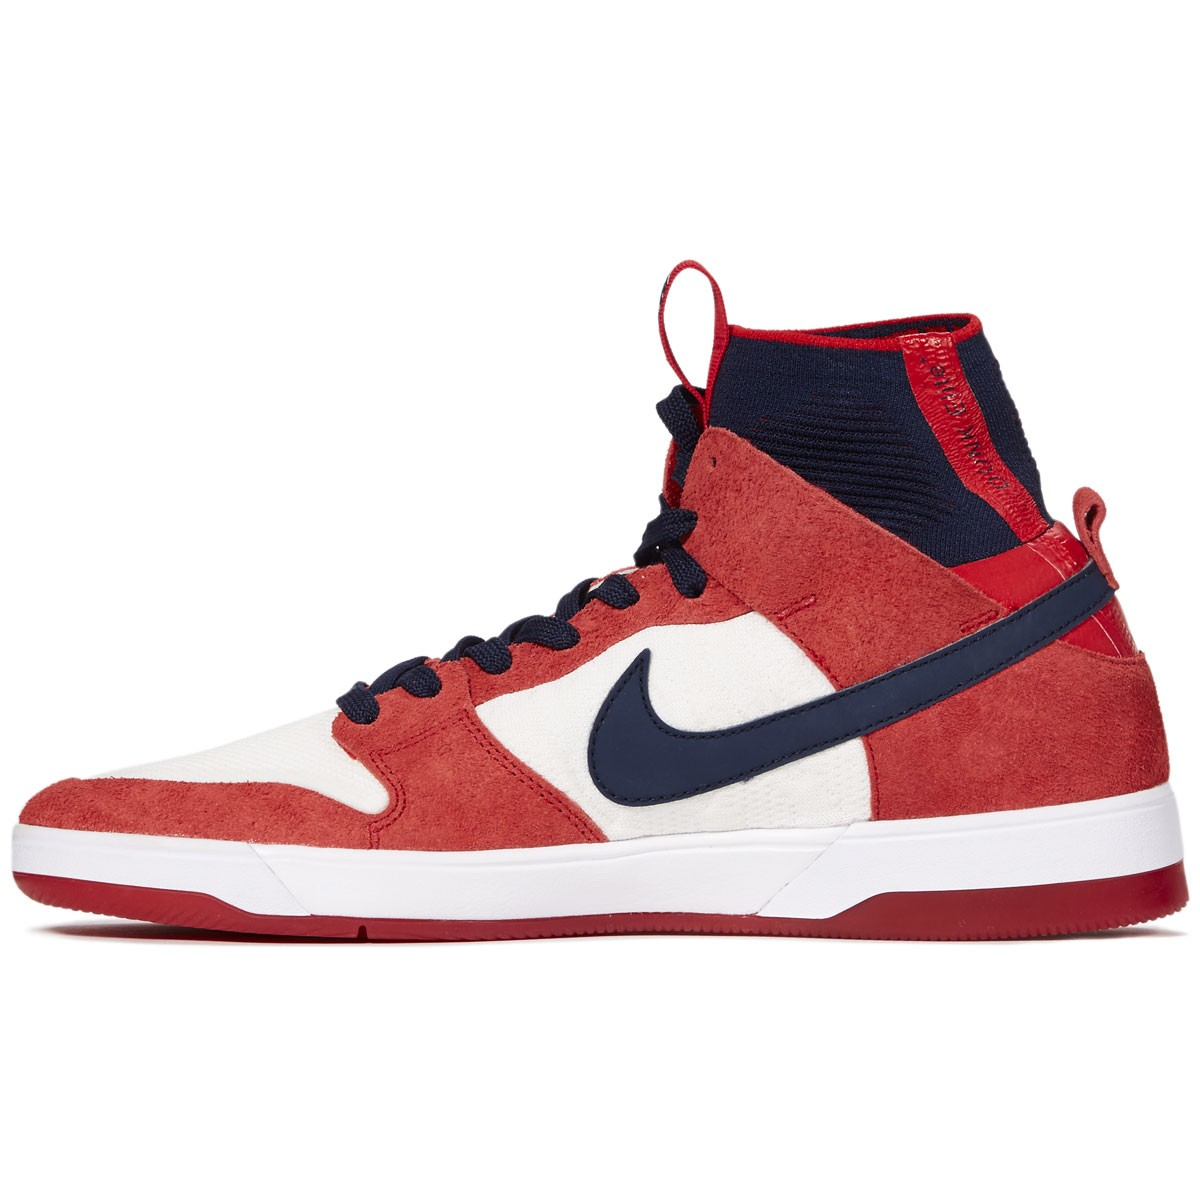 04880e57a9d0 ... norway nike sb zoom dunk high elite shoes university red college navy  white 9d095 f58f6